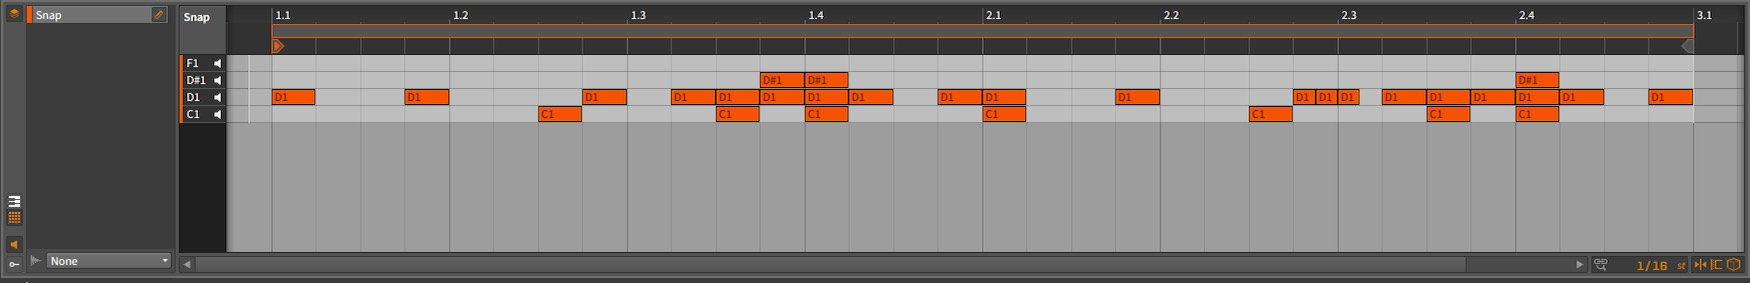 Bitwig Studio - Snap Arrangement [D#1 - Snap]